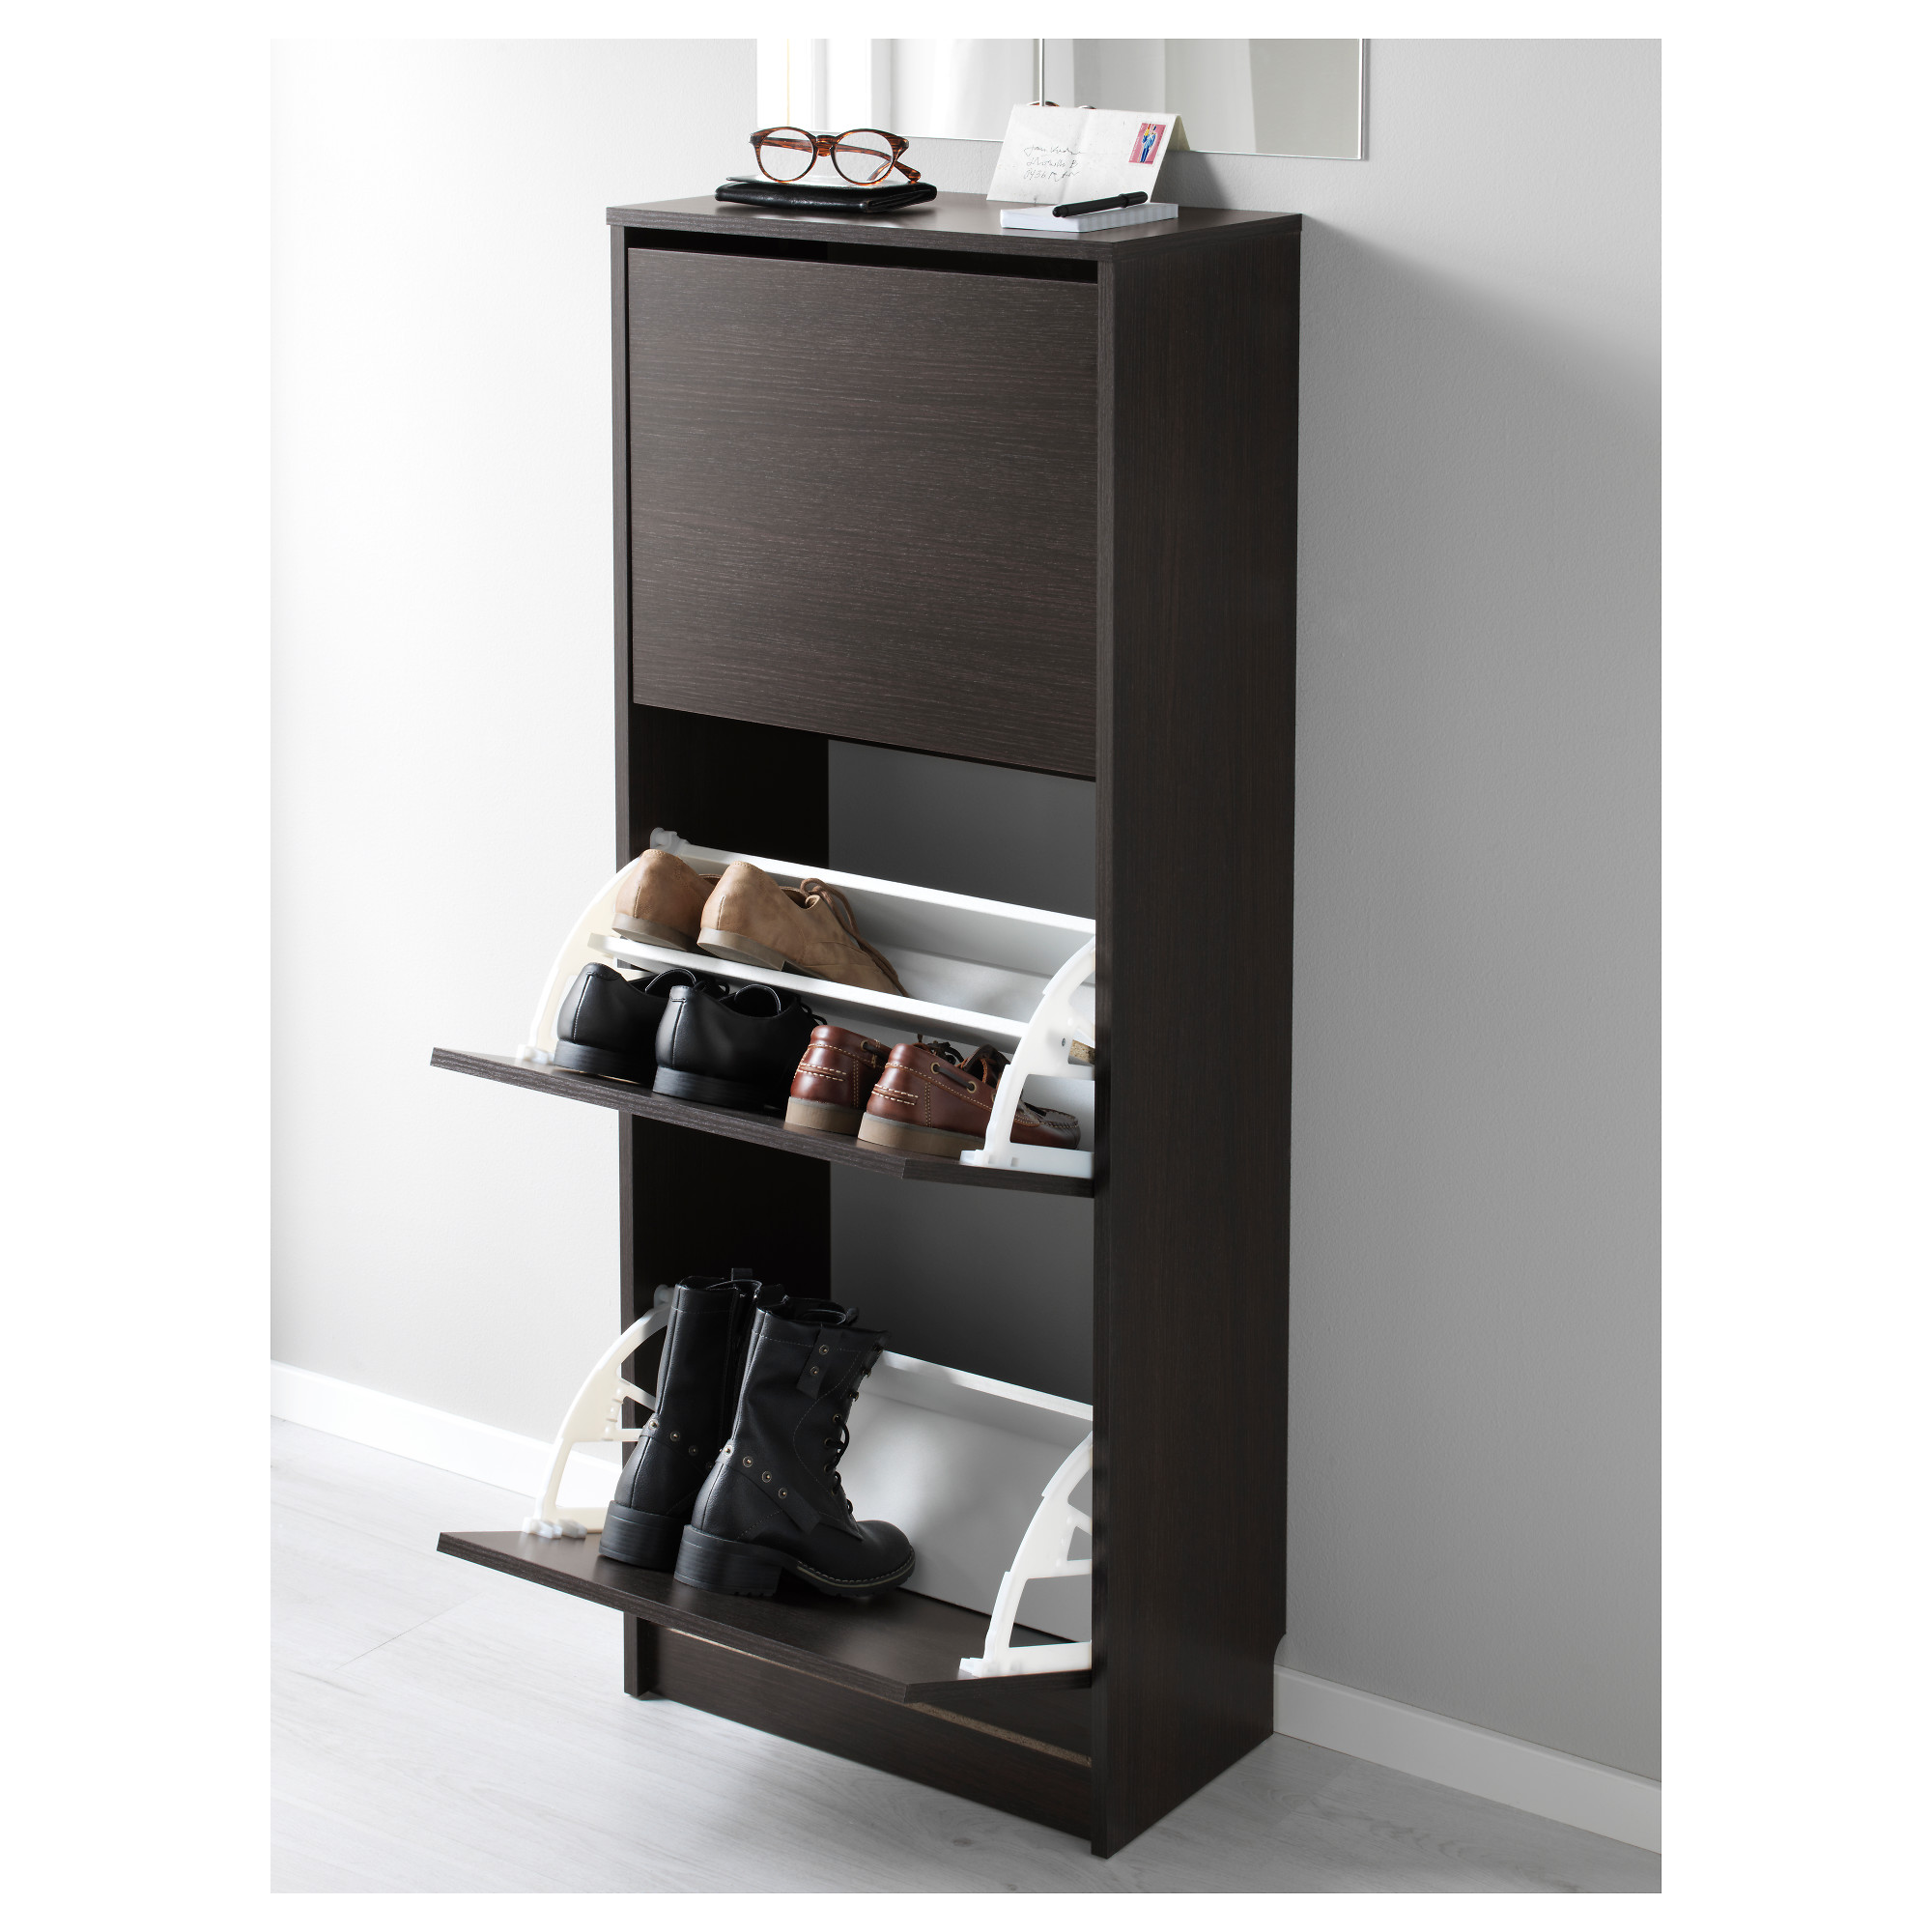 Shoe cabinet with 3 compartments BISSA black, brown